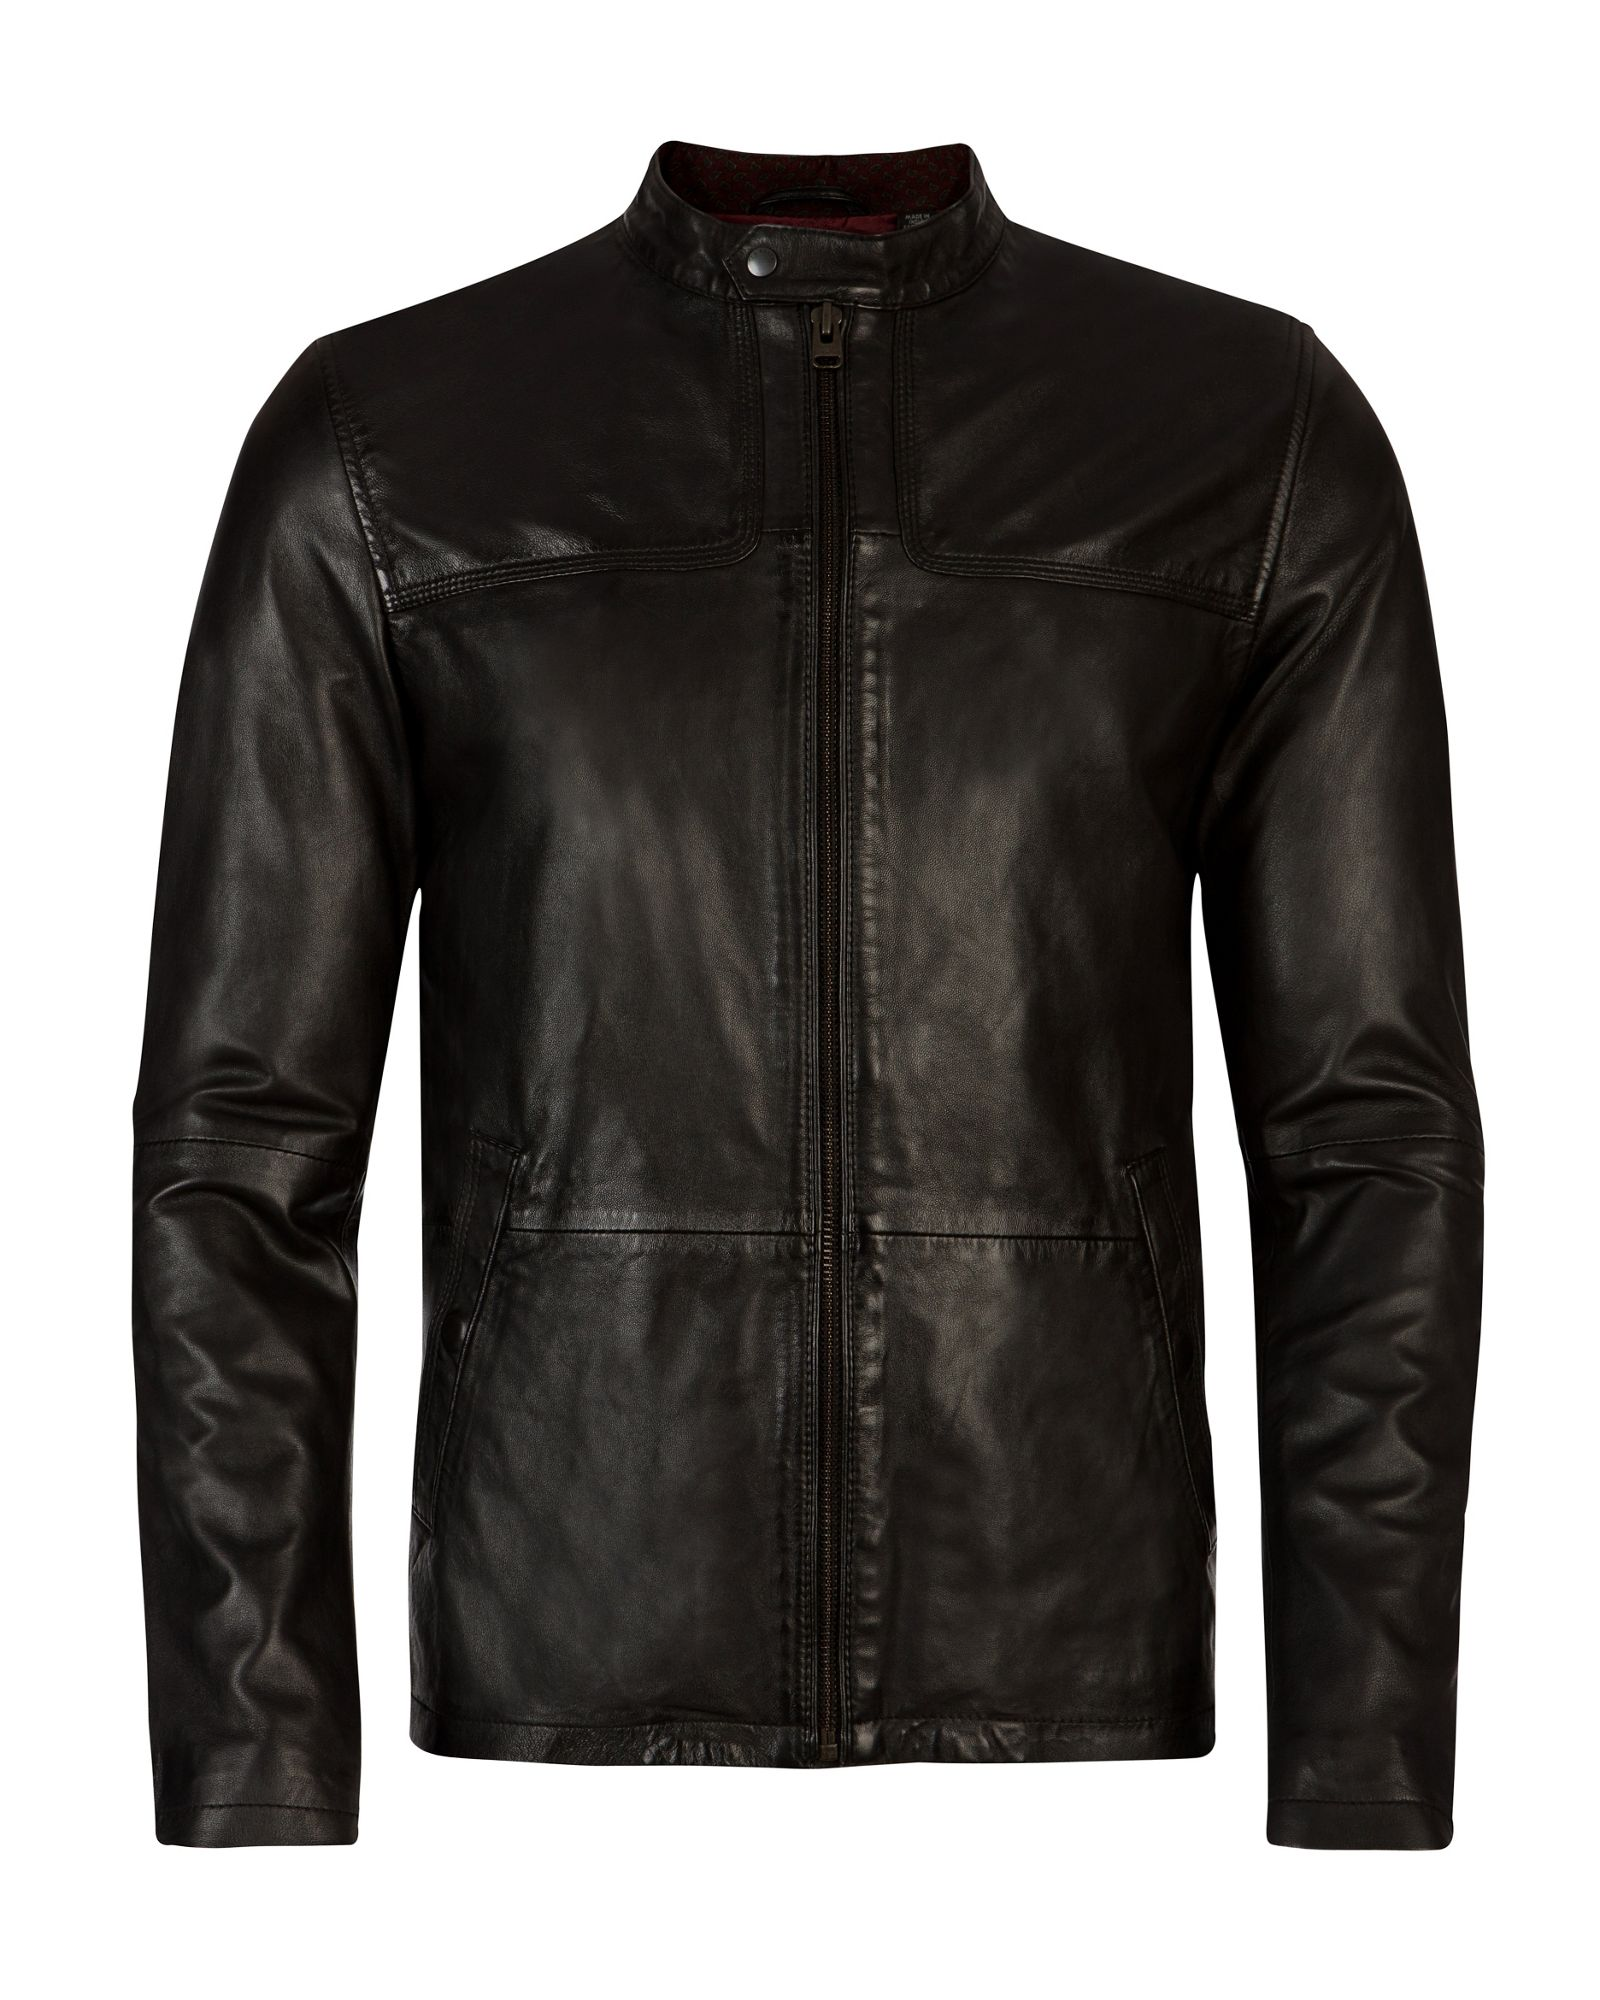 f59e010fa Ted Baker Birgin Leather Jacket Black - Cairoamani.com